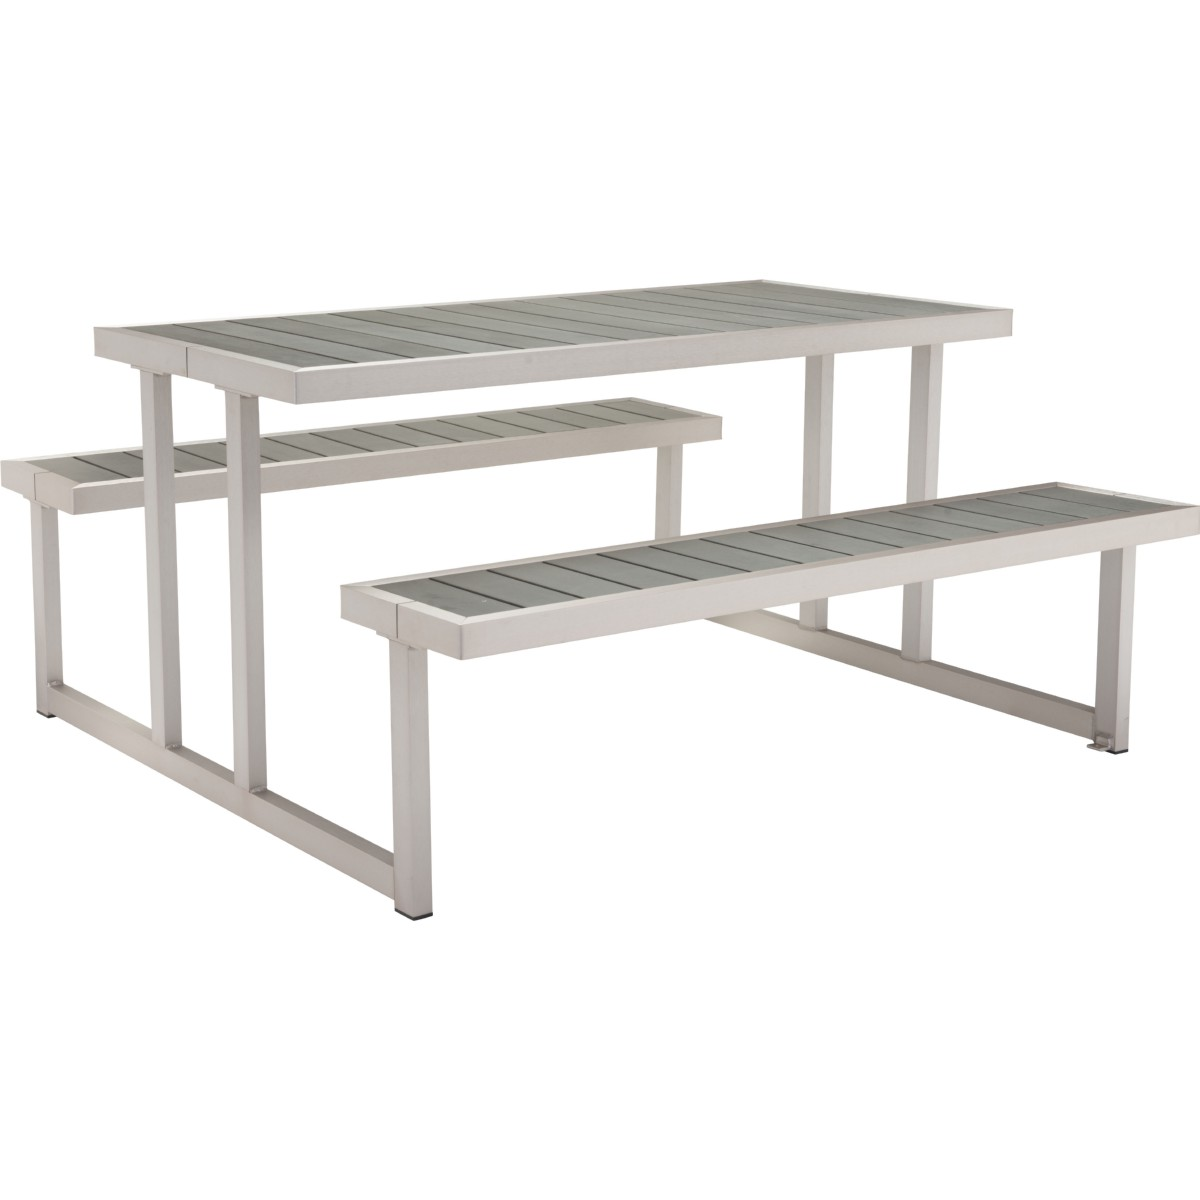 Brilliant Cuomo Picnic Table Benches W Poly Wood Tops On Galanized Aluminum Frame By Zuo Gamerscity Chair Design For Home Gamerscityorg